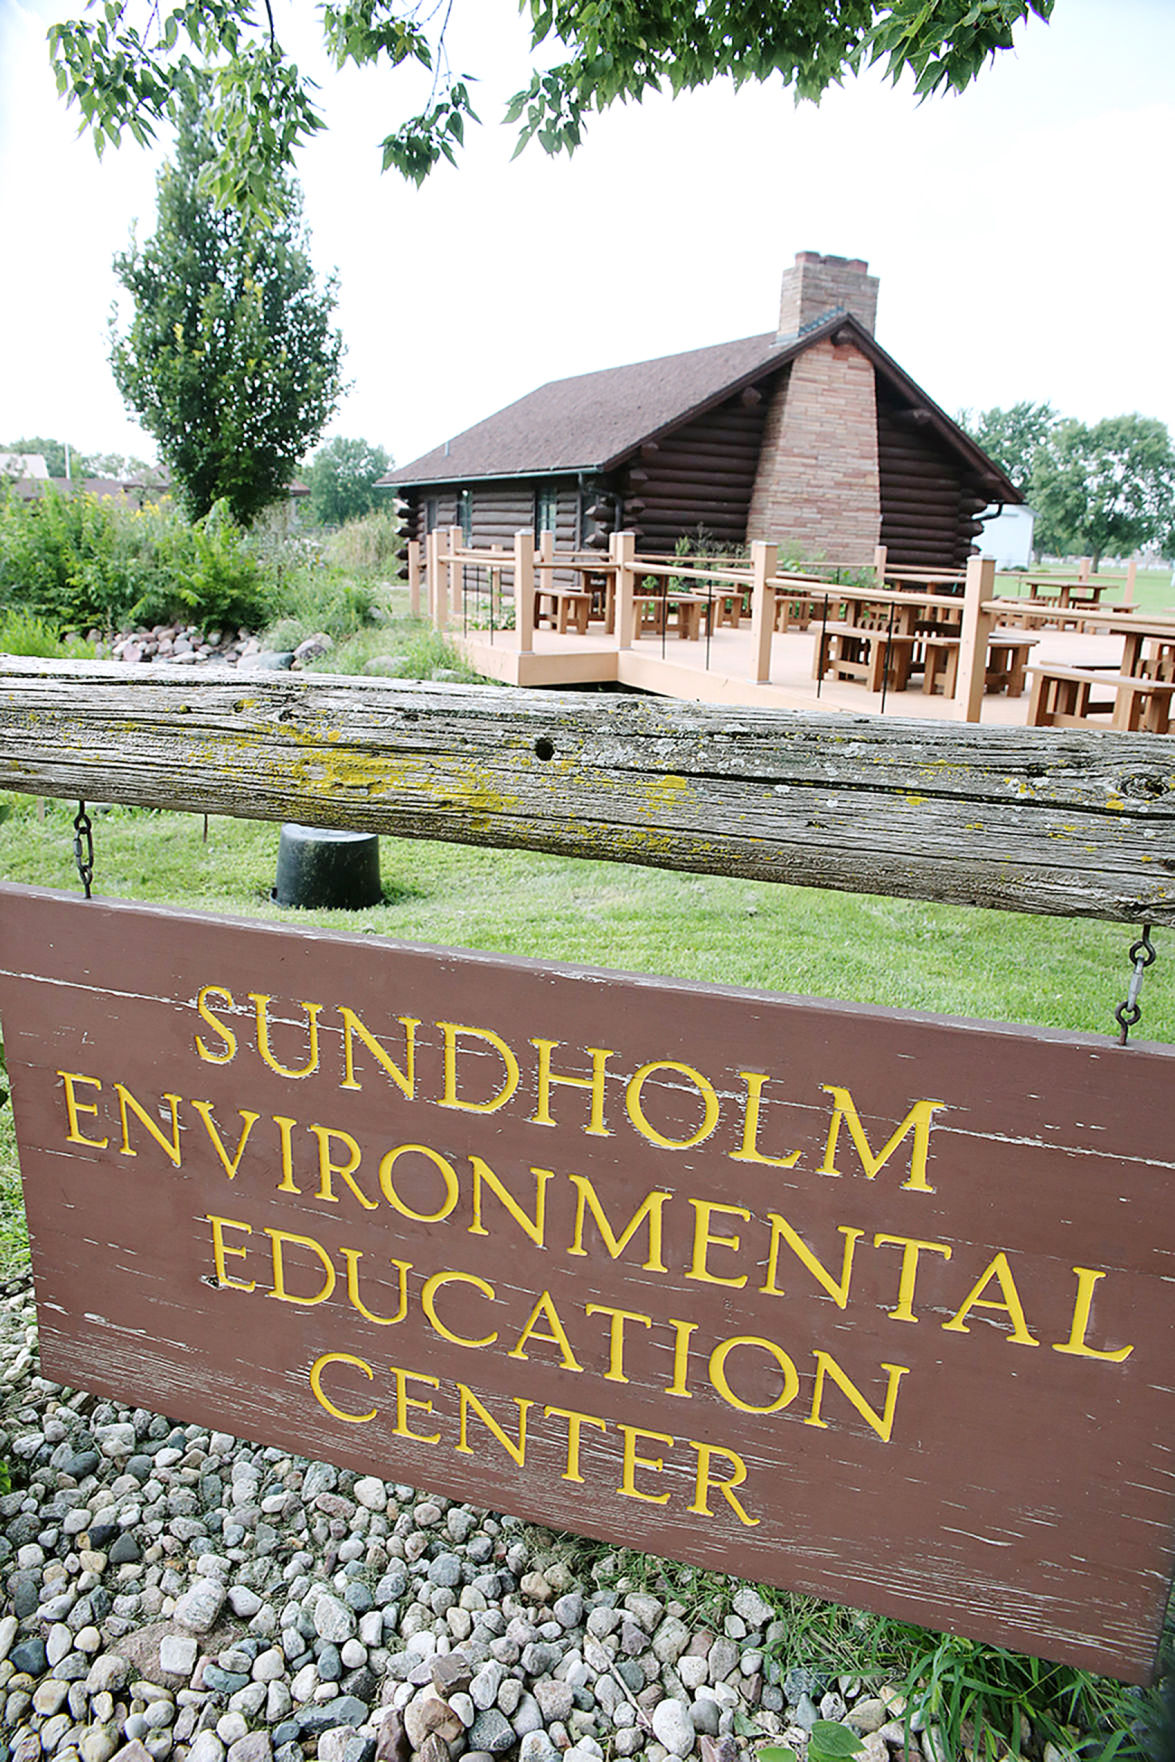 Sundholm Learning Center